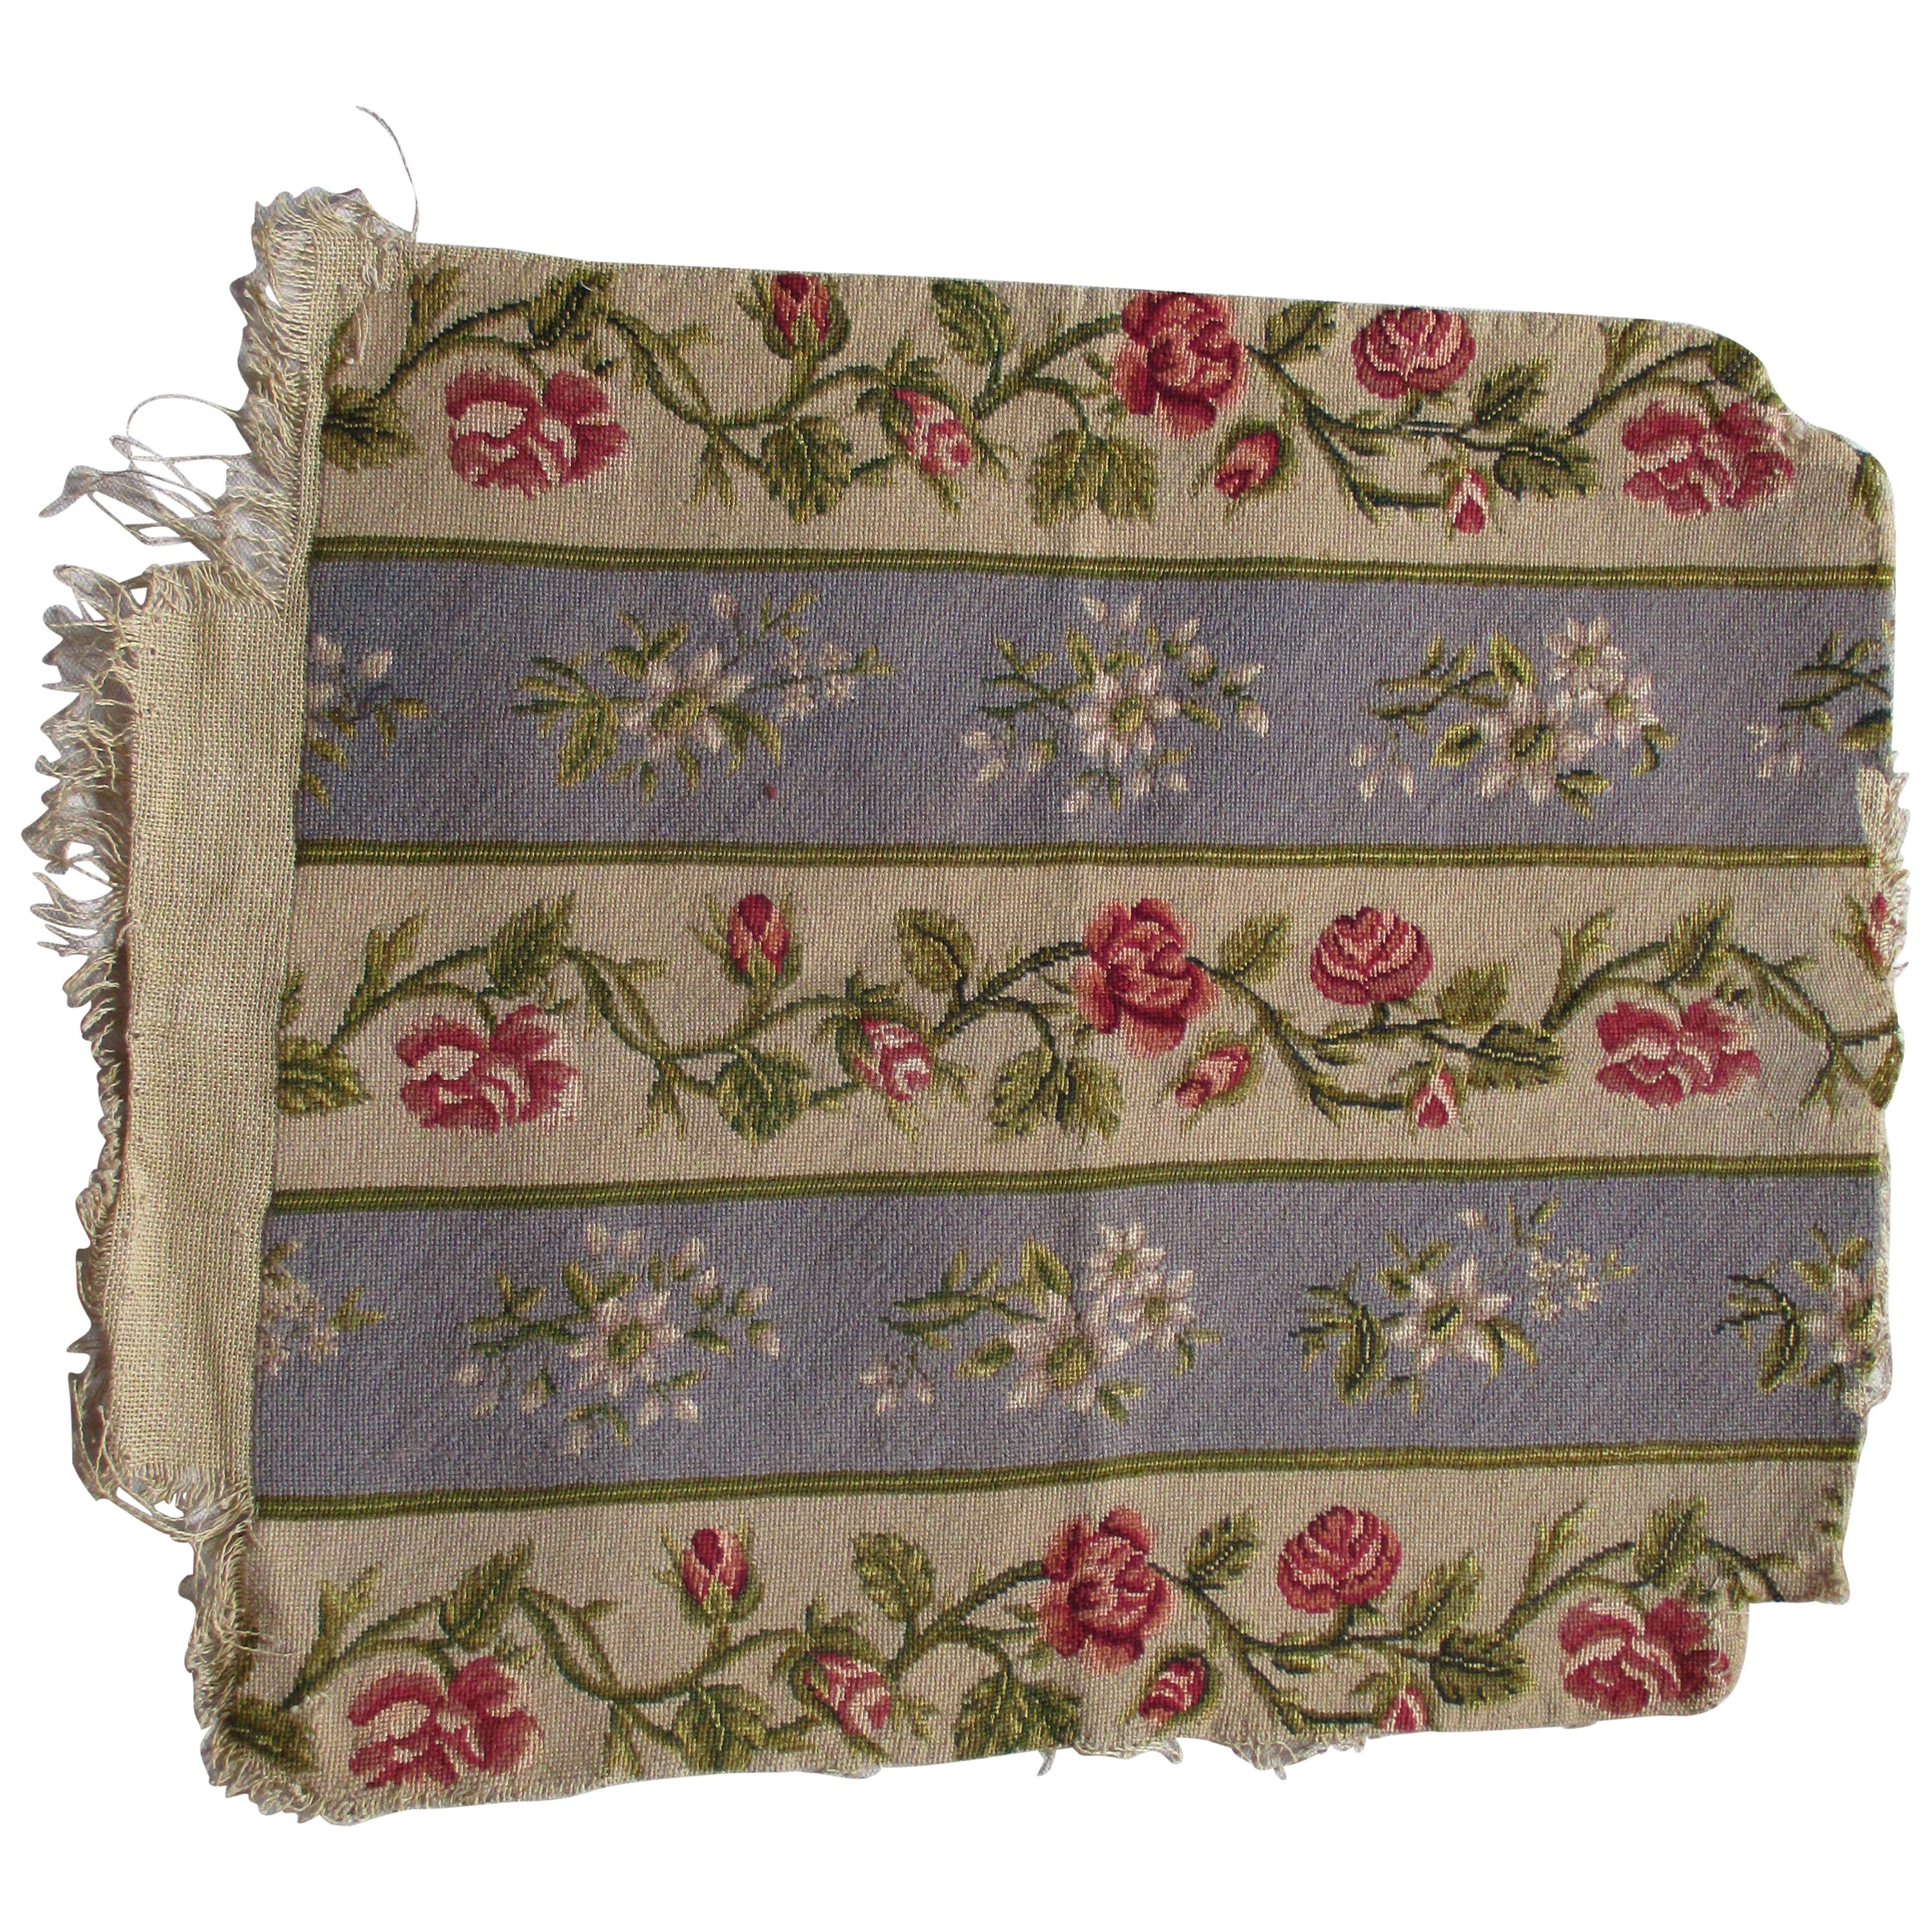 Antique Petit Point Tapestry Seat Cover Fragment